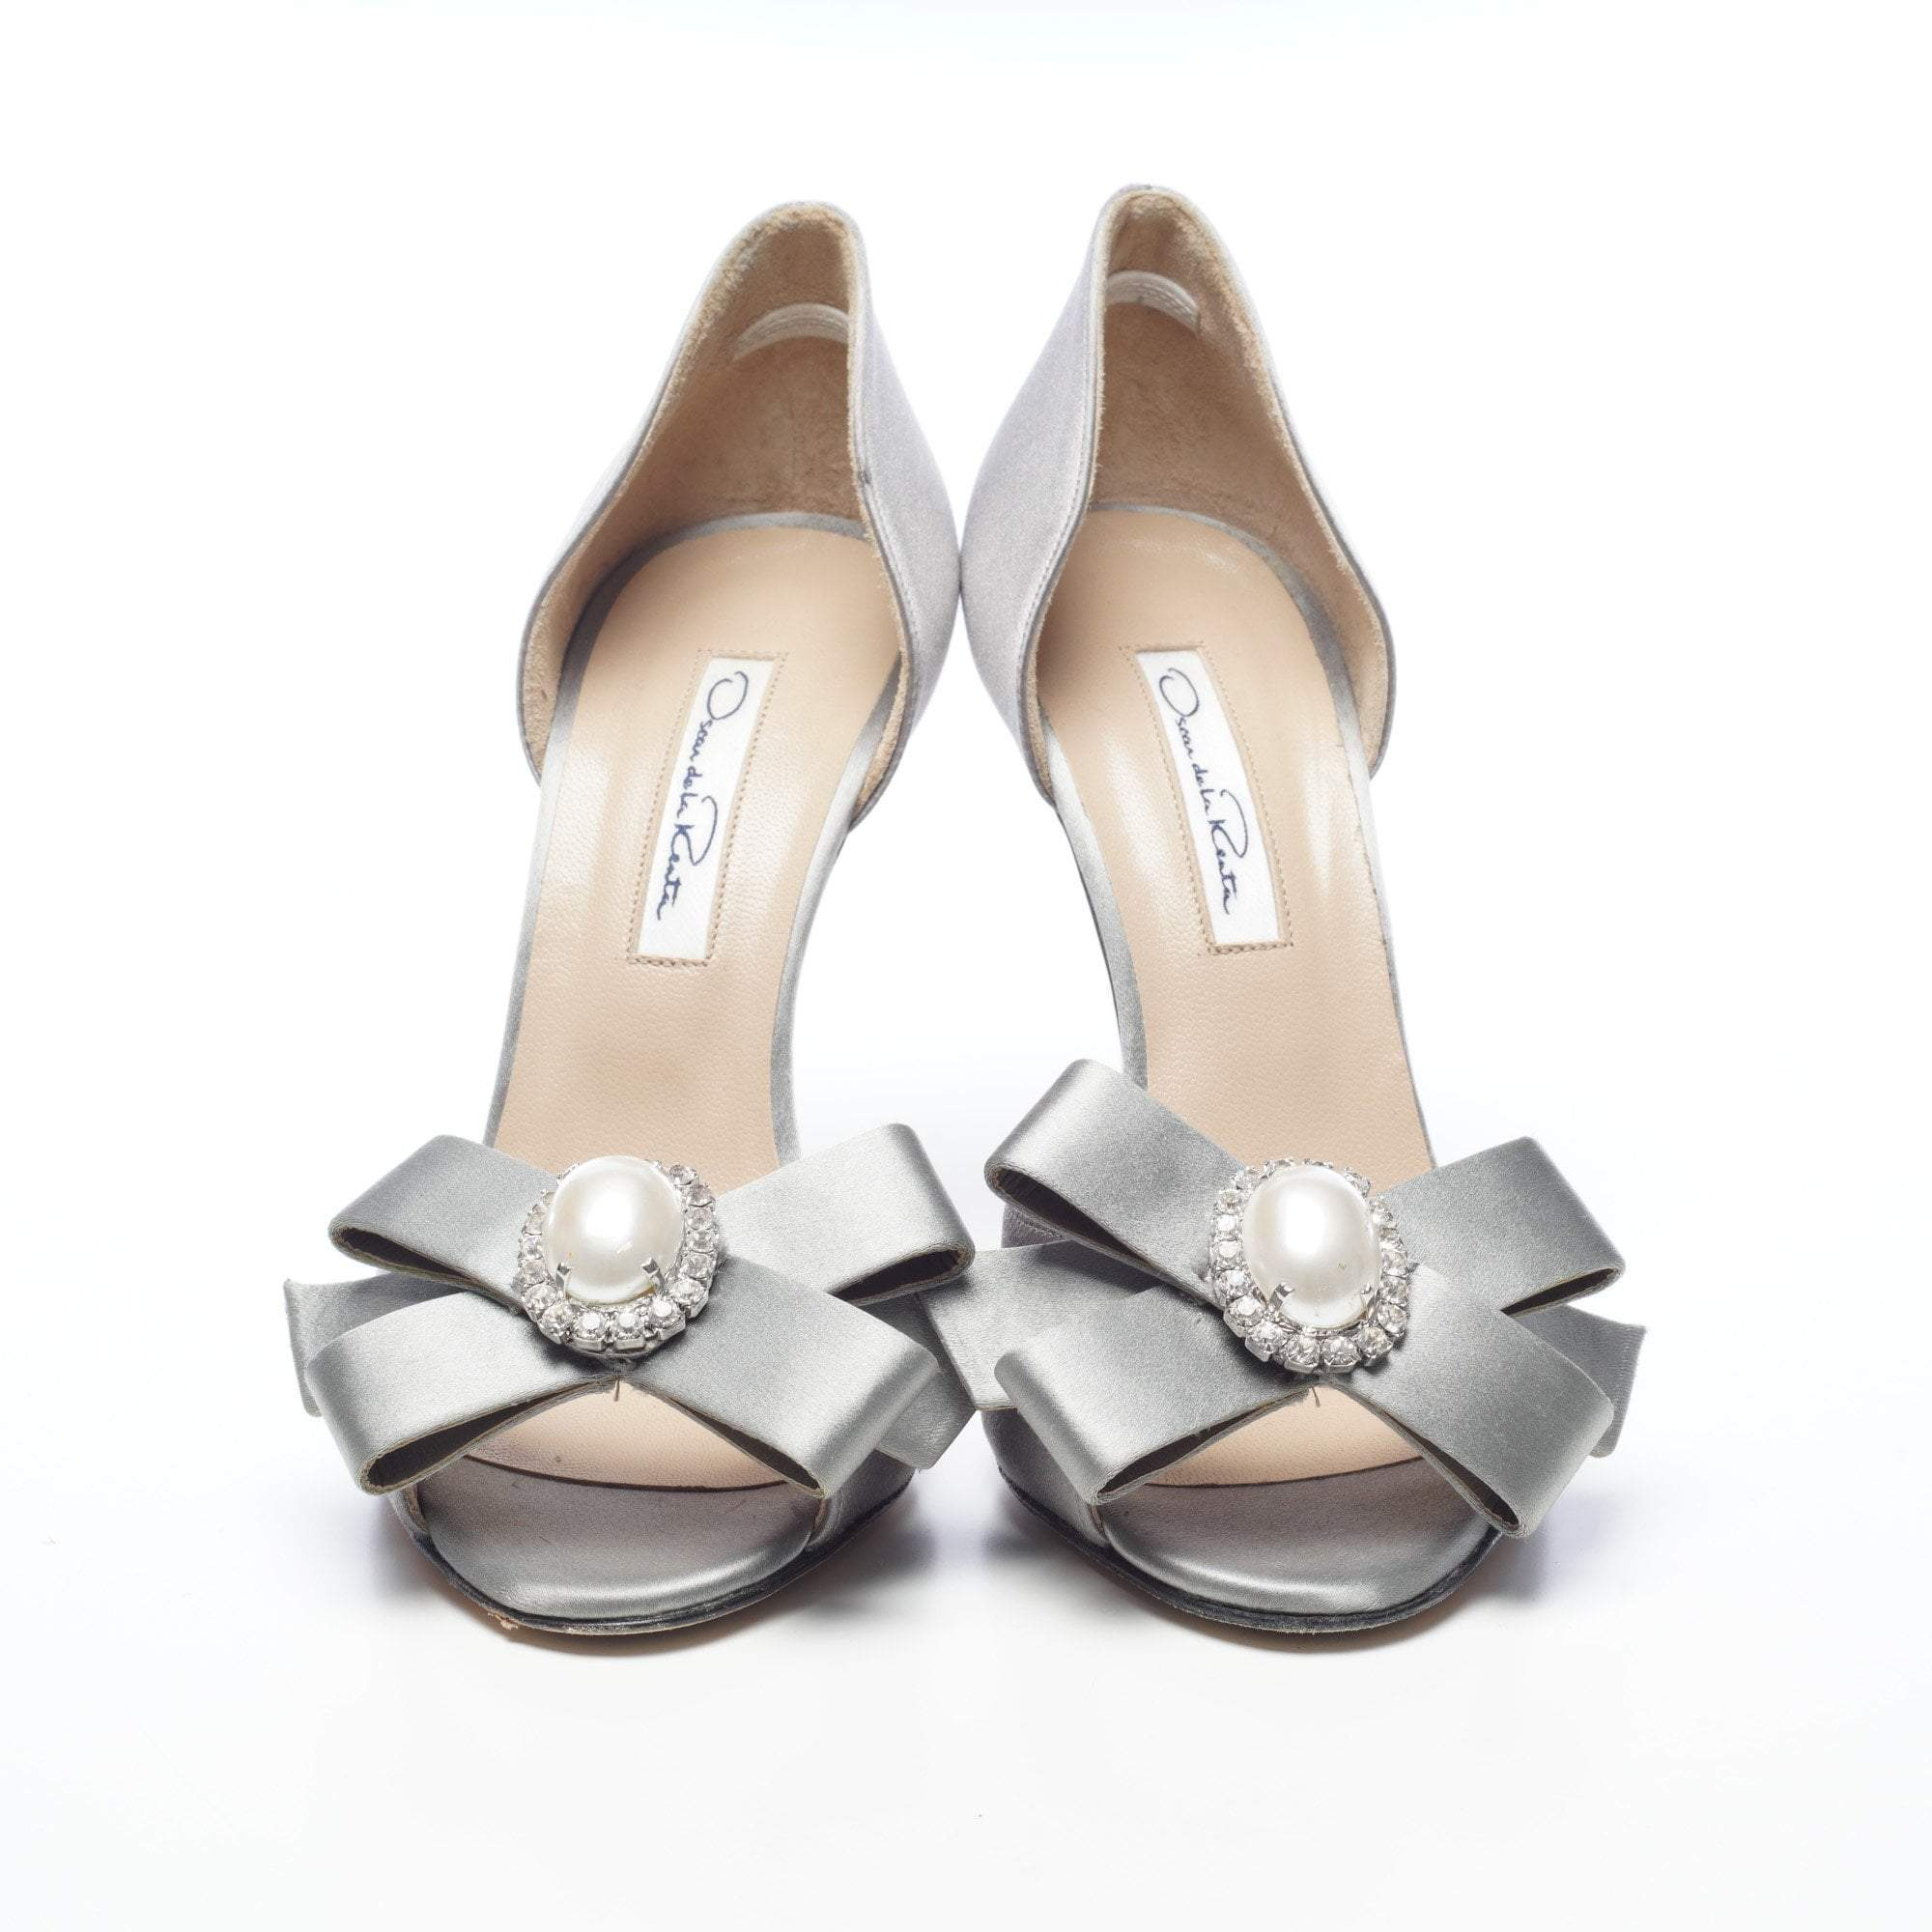 Oscar De La Renta Open Toe Grey Satin Dorsay Bow Sandals